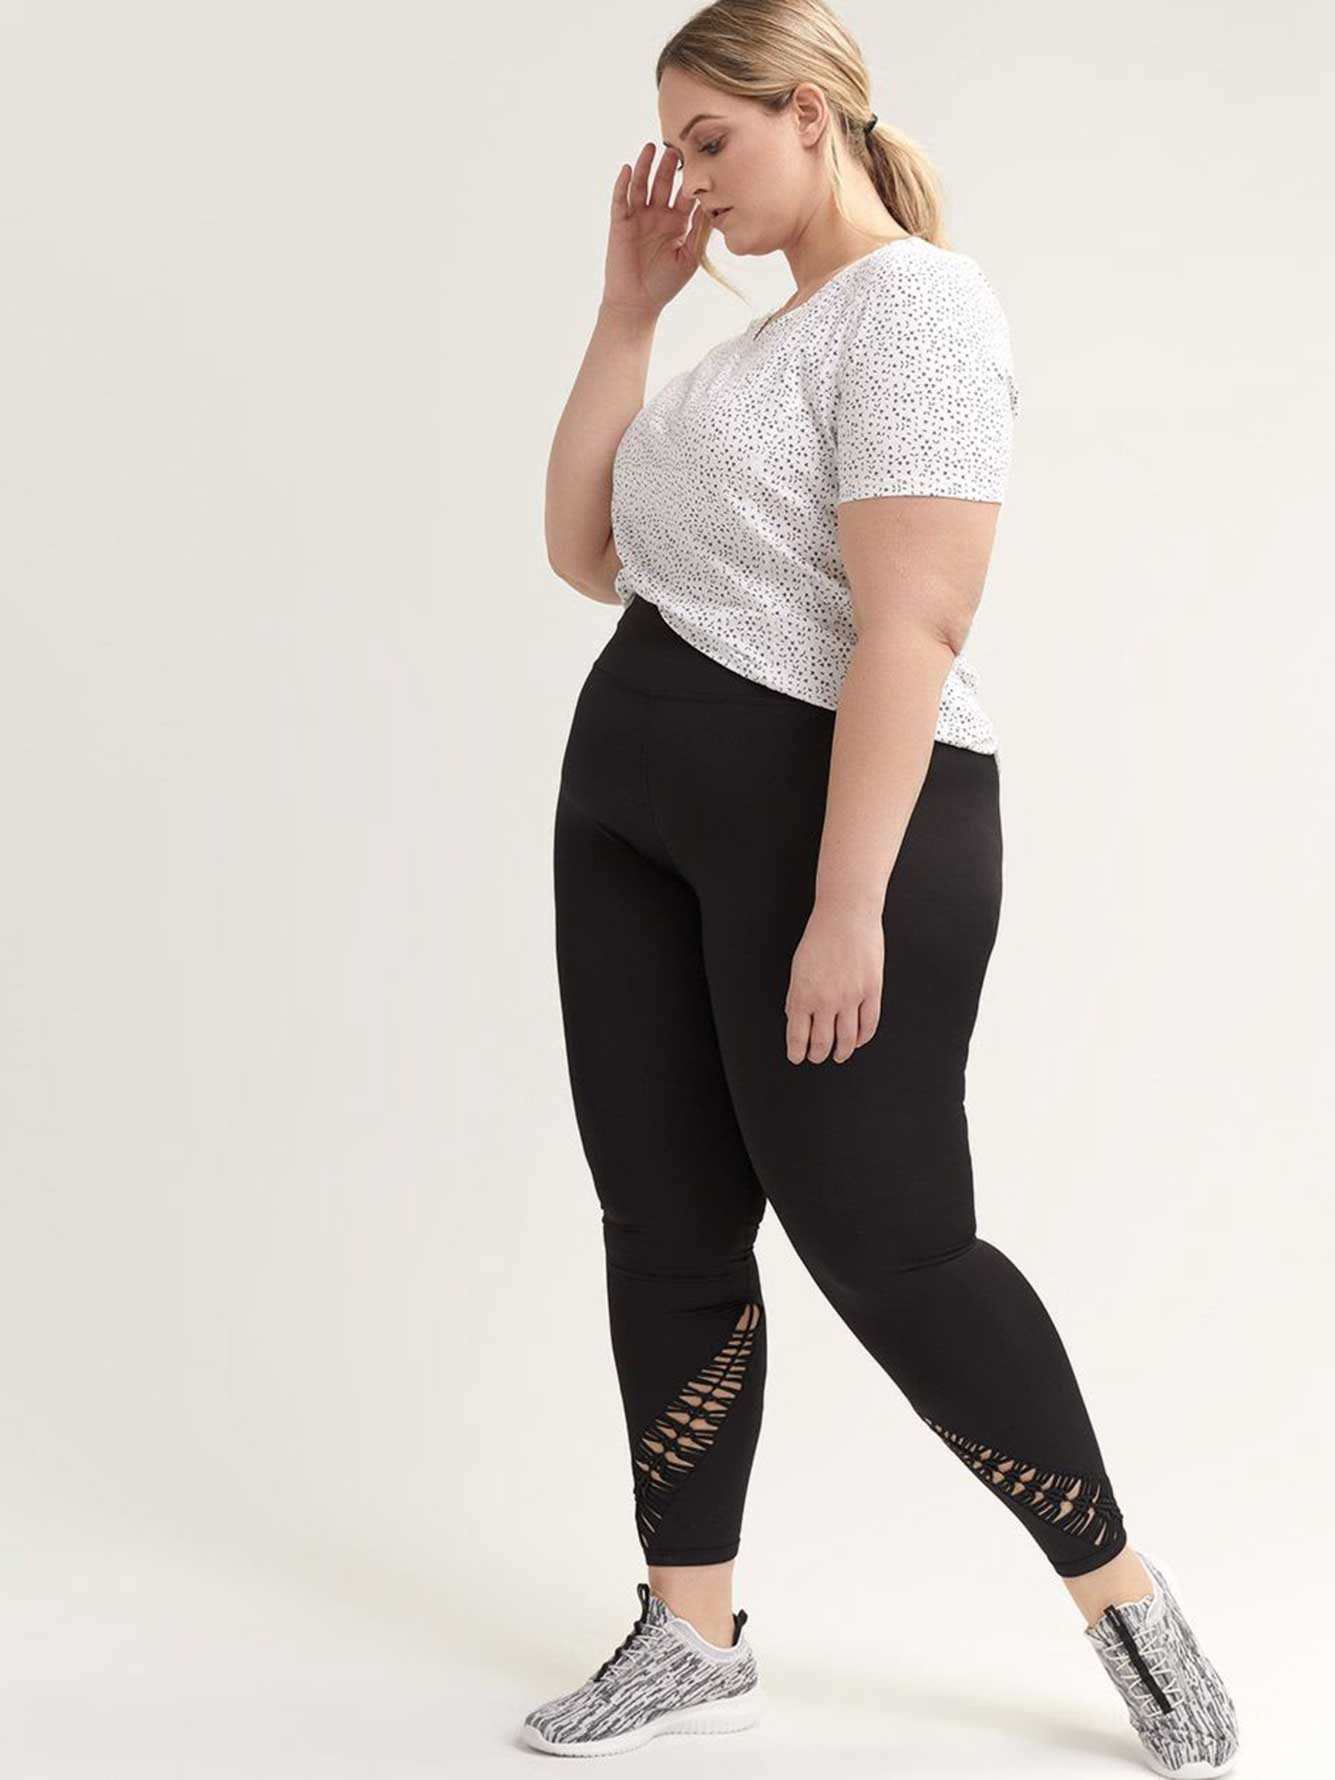 Legging With Macrame Insert   Active Zone by Addition Elle